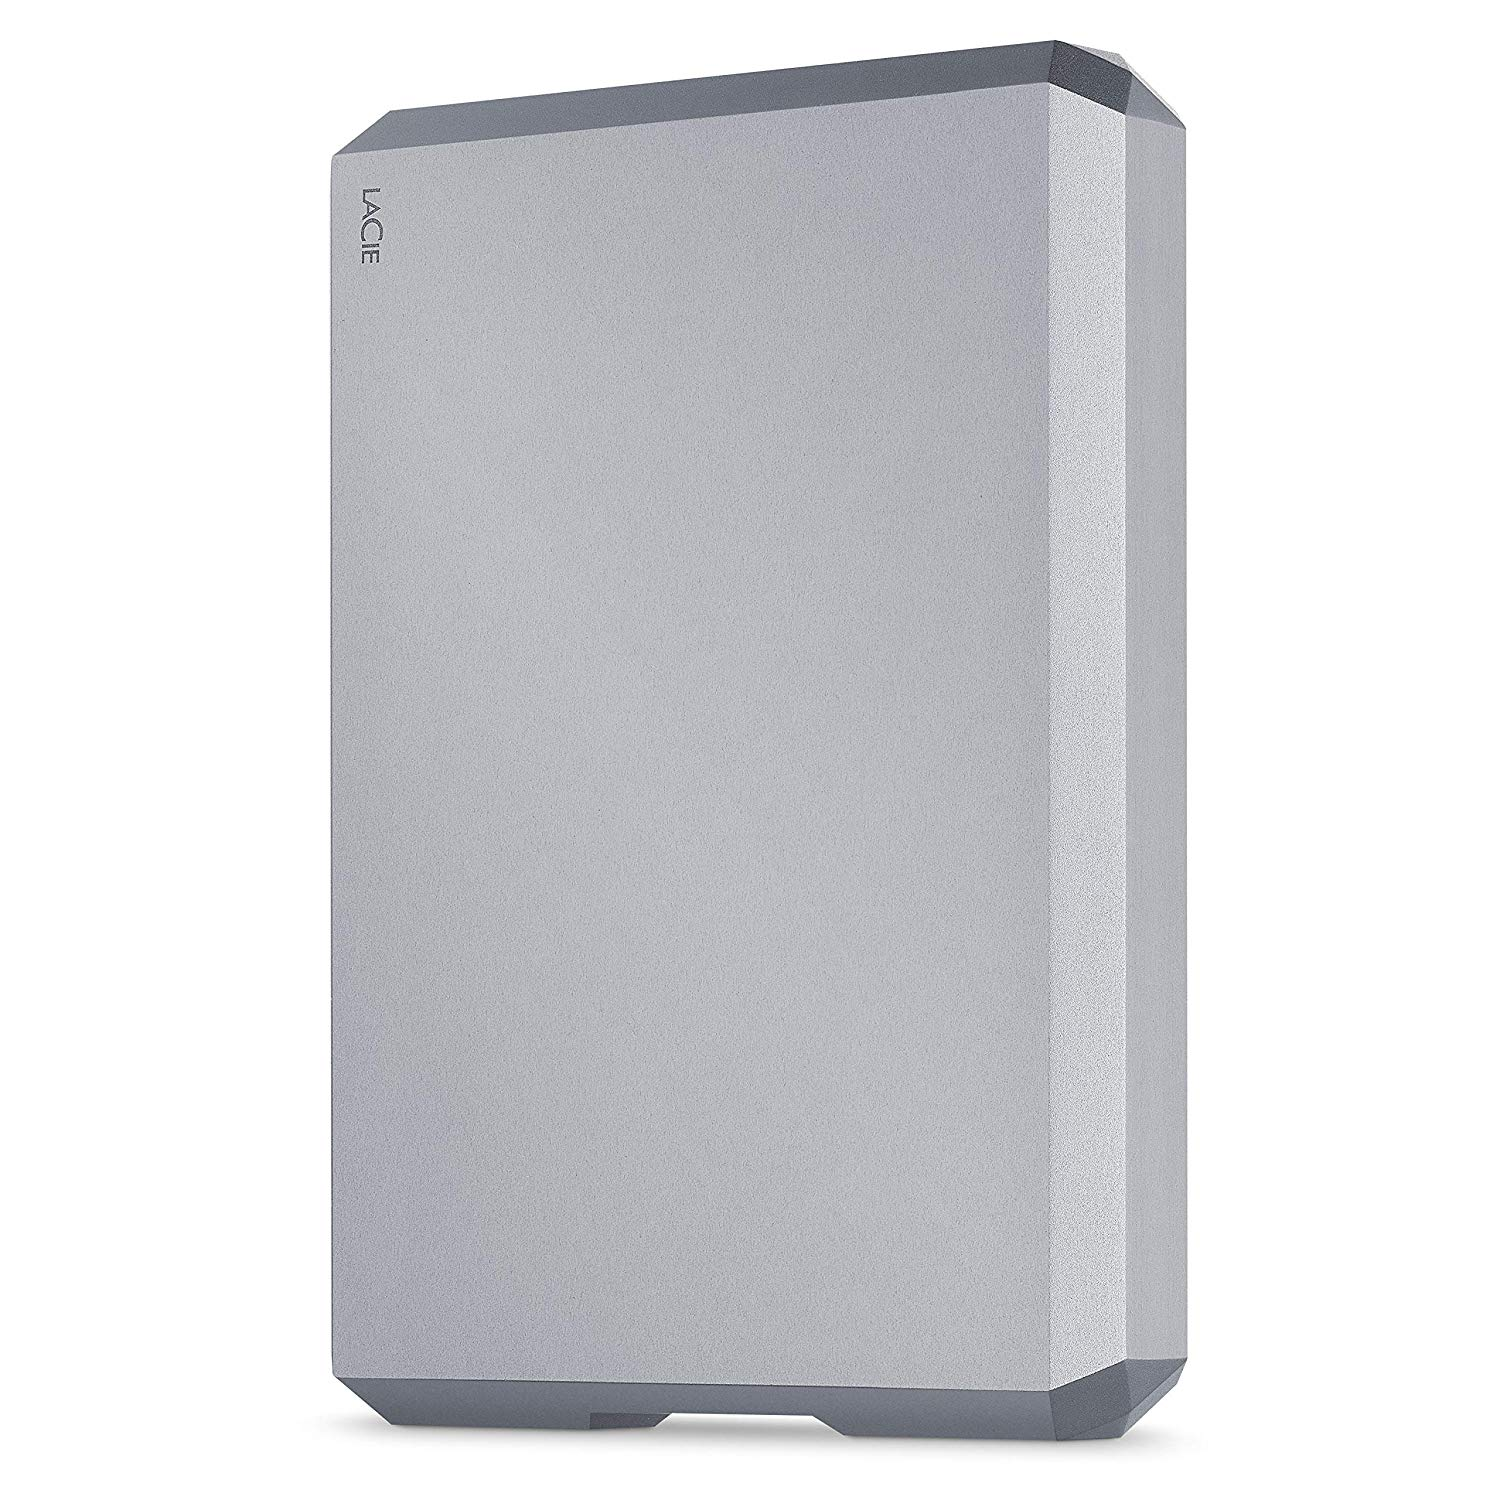 Hard Drives 4TB LaCie USBC Space Grey Mobile Ext HDD